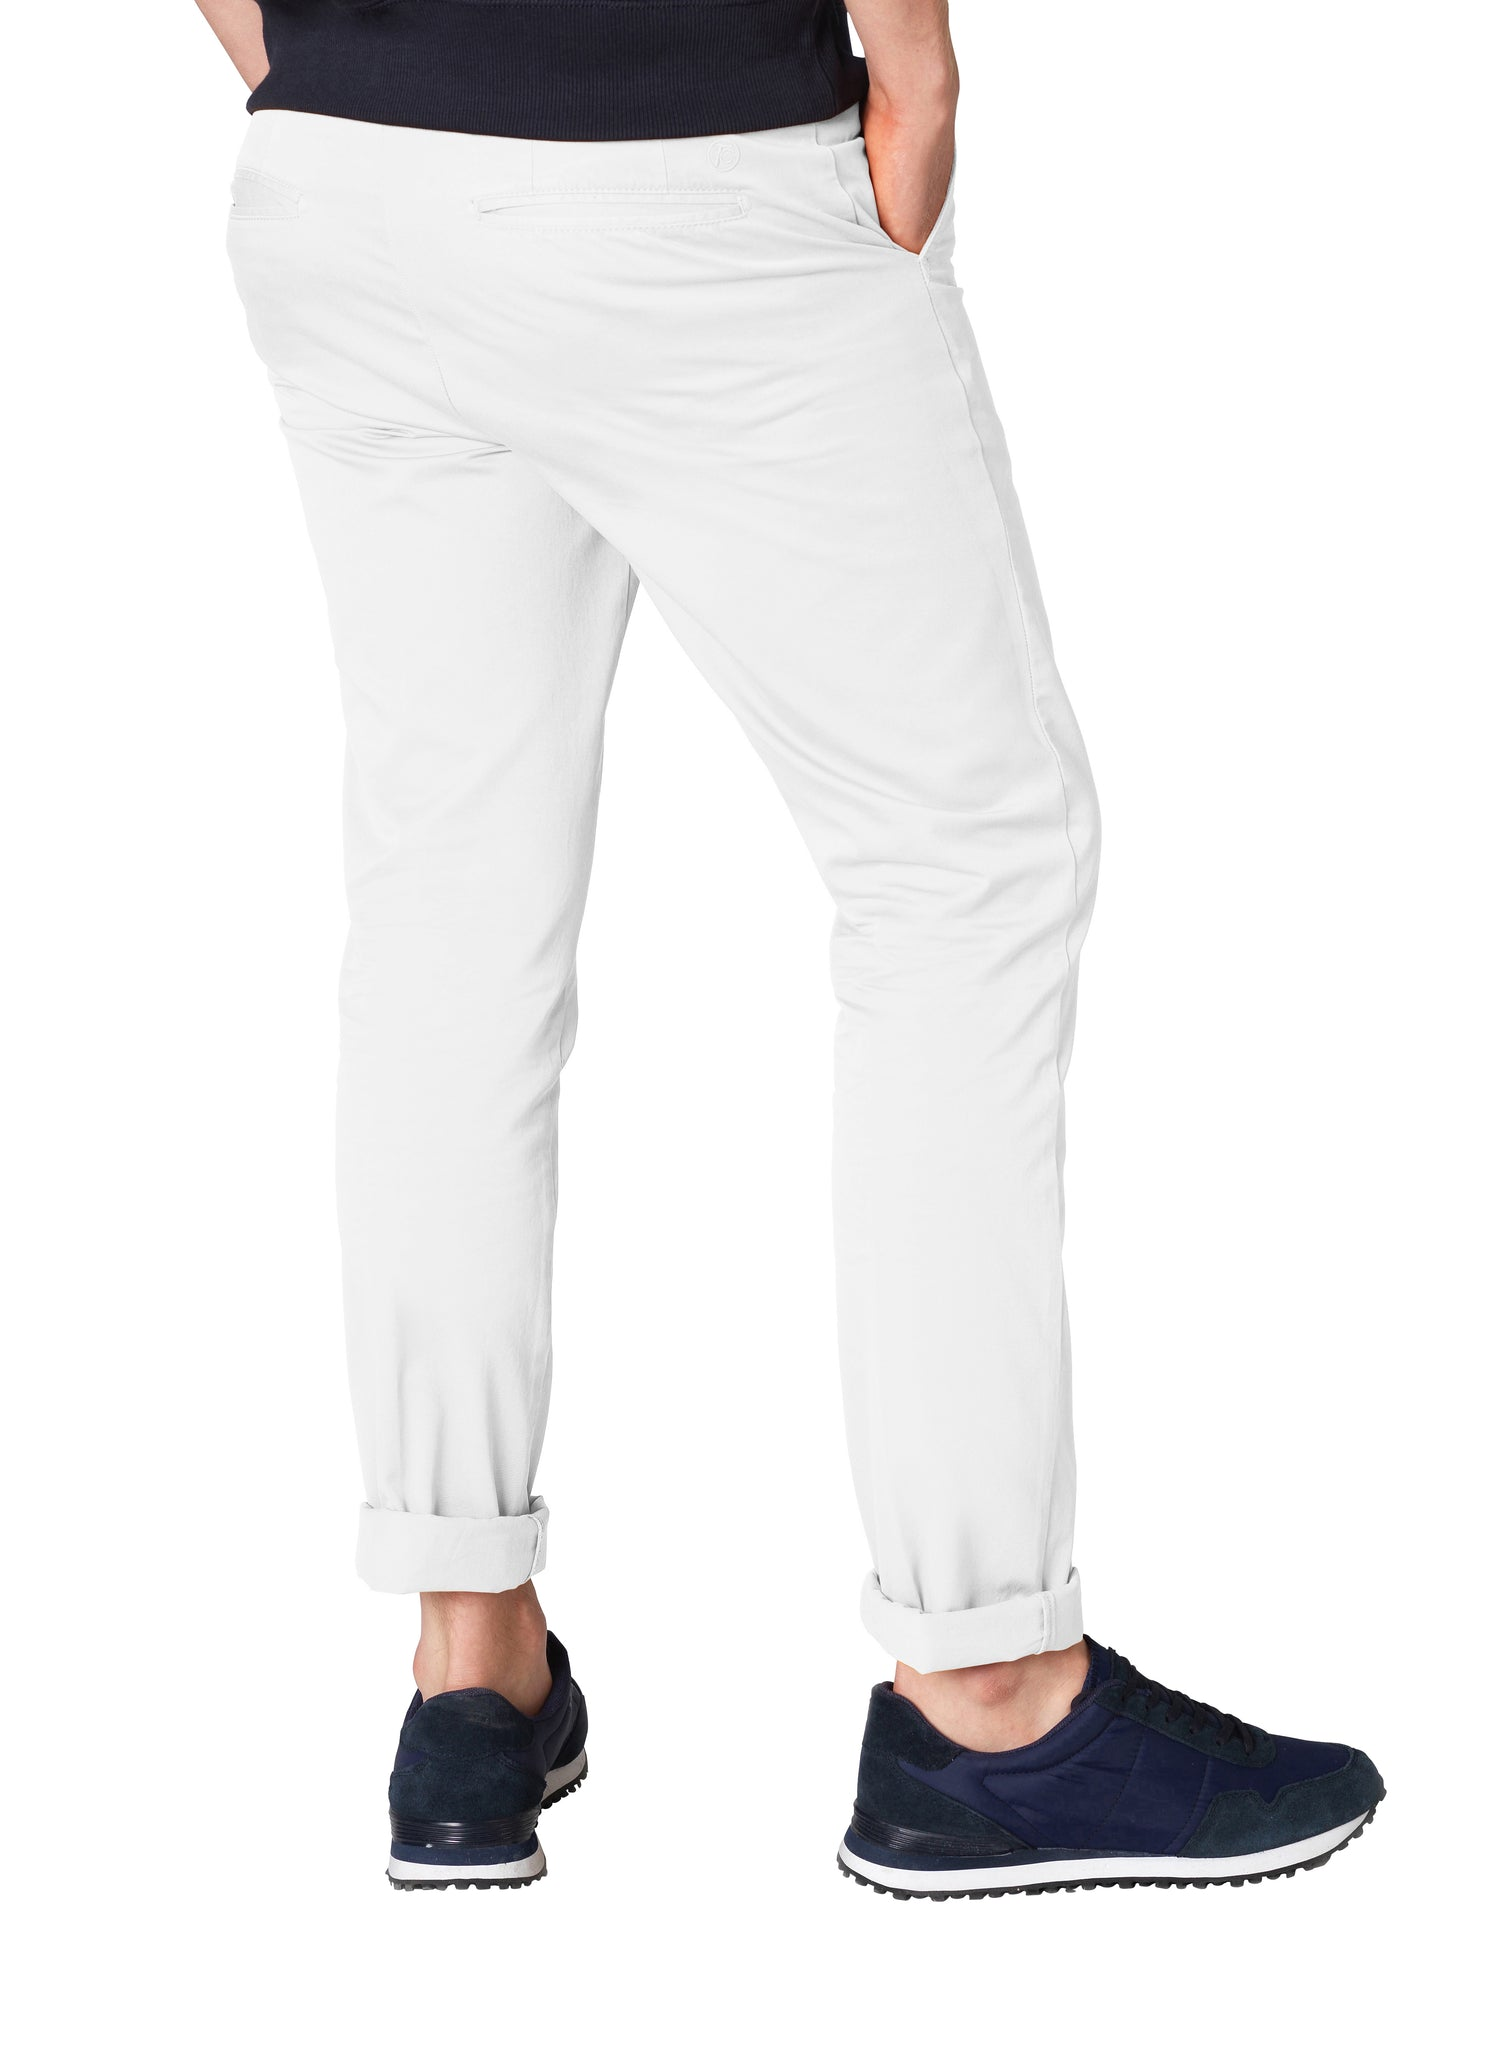 Dove White Chinos